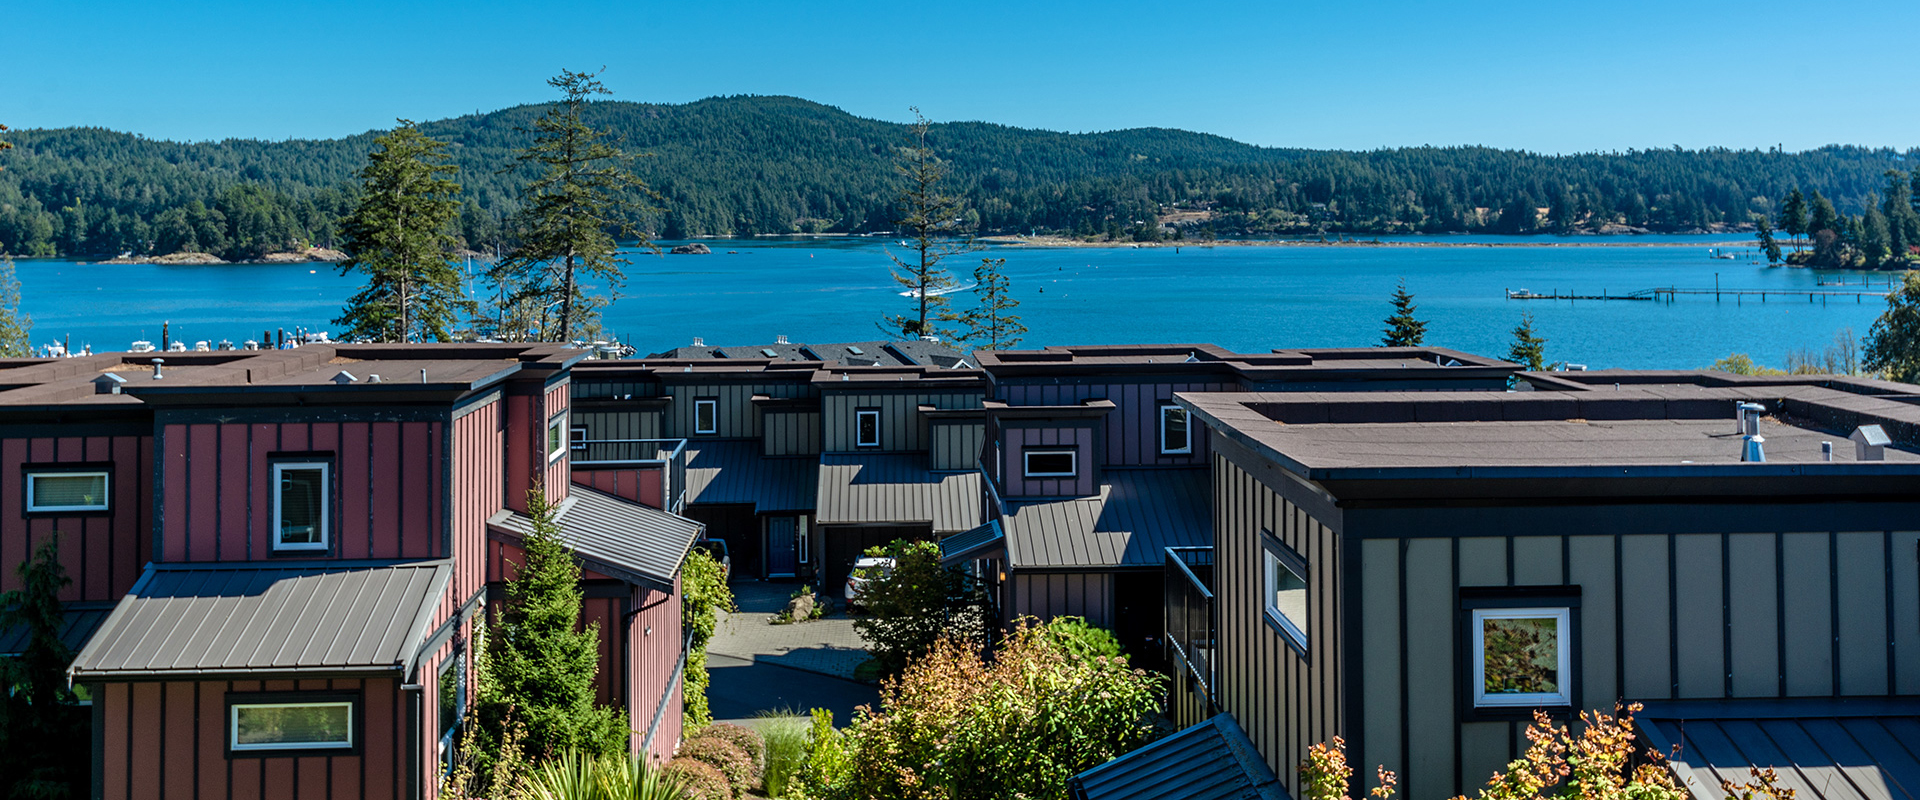 sooke_harbour_resort__marina-september_13_2016large-81